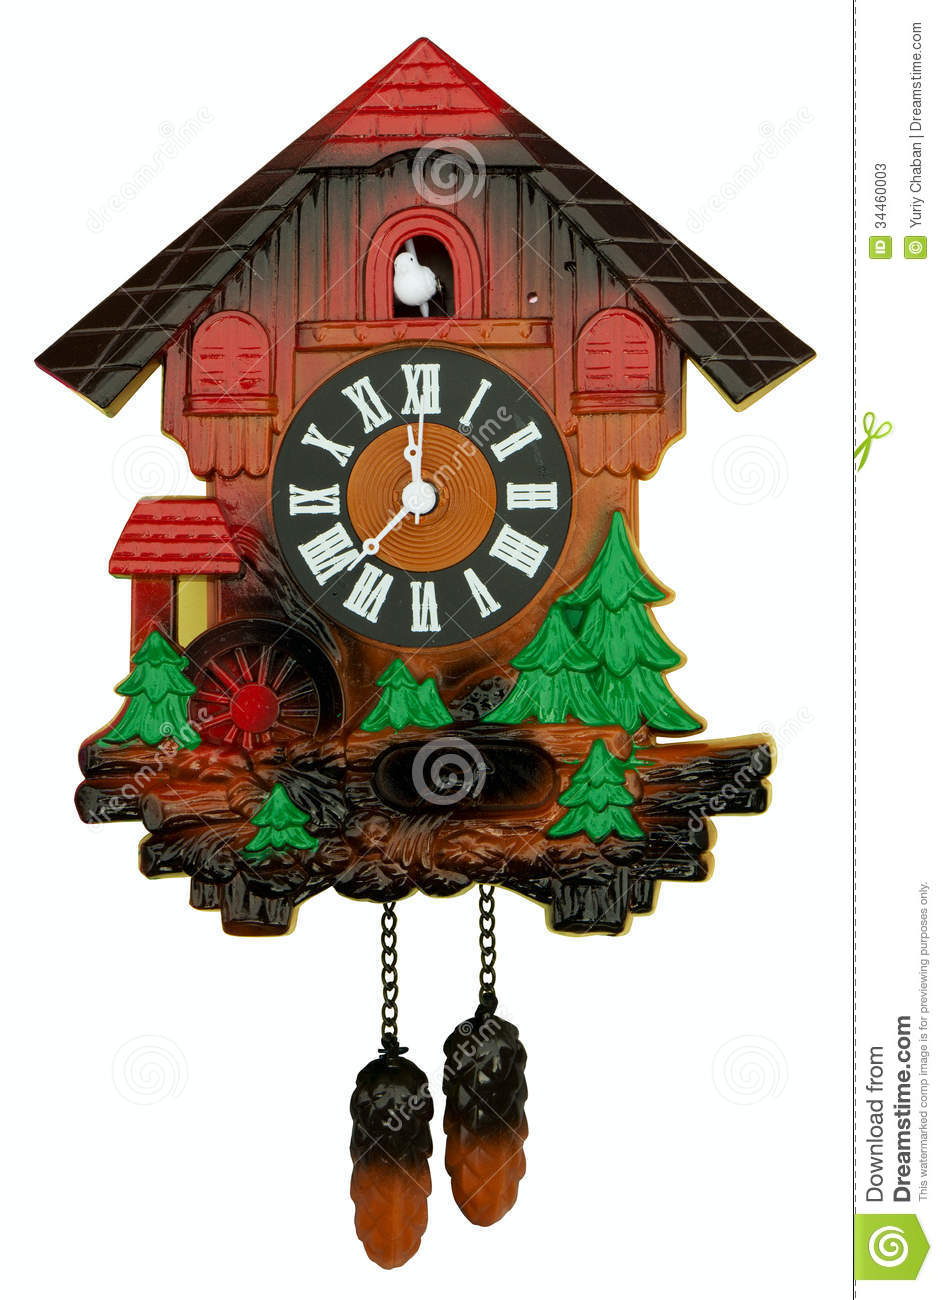 Old Cuckoo Clock Stock Photos - Image: 34460003